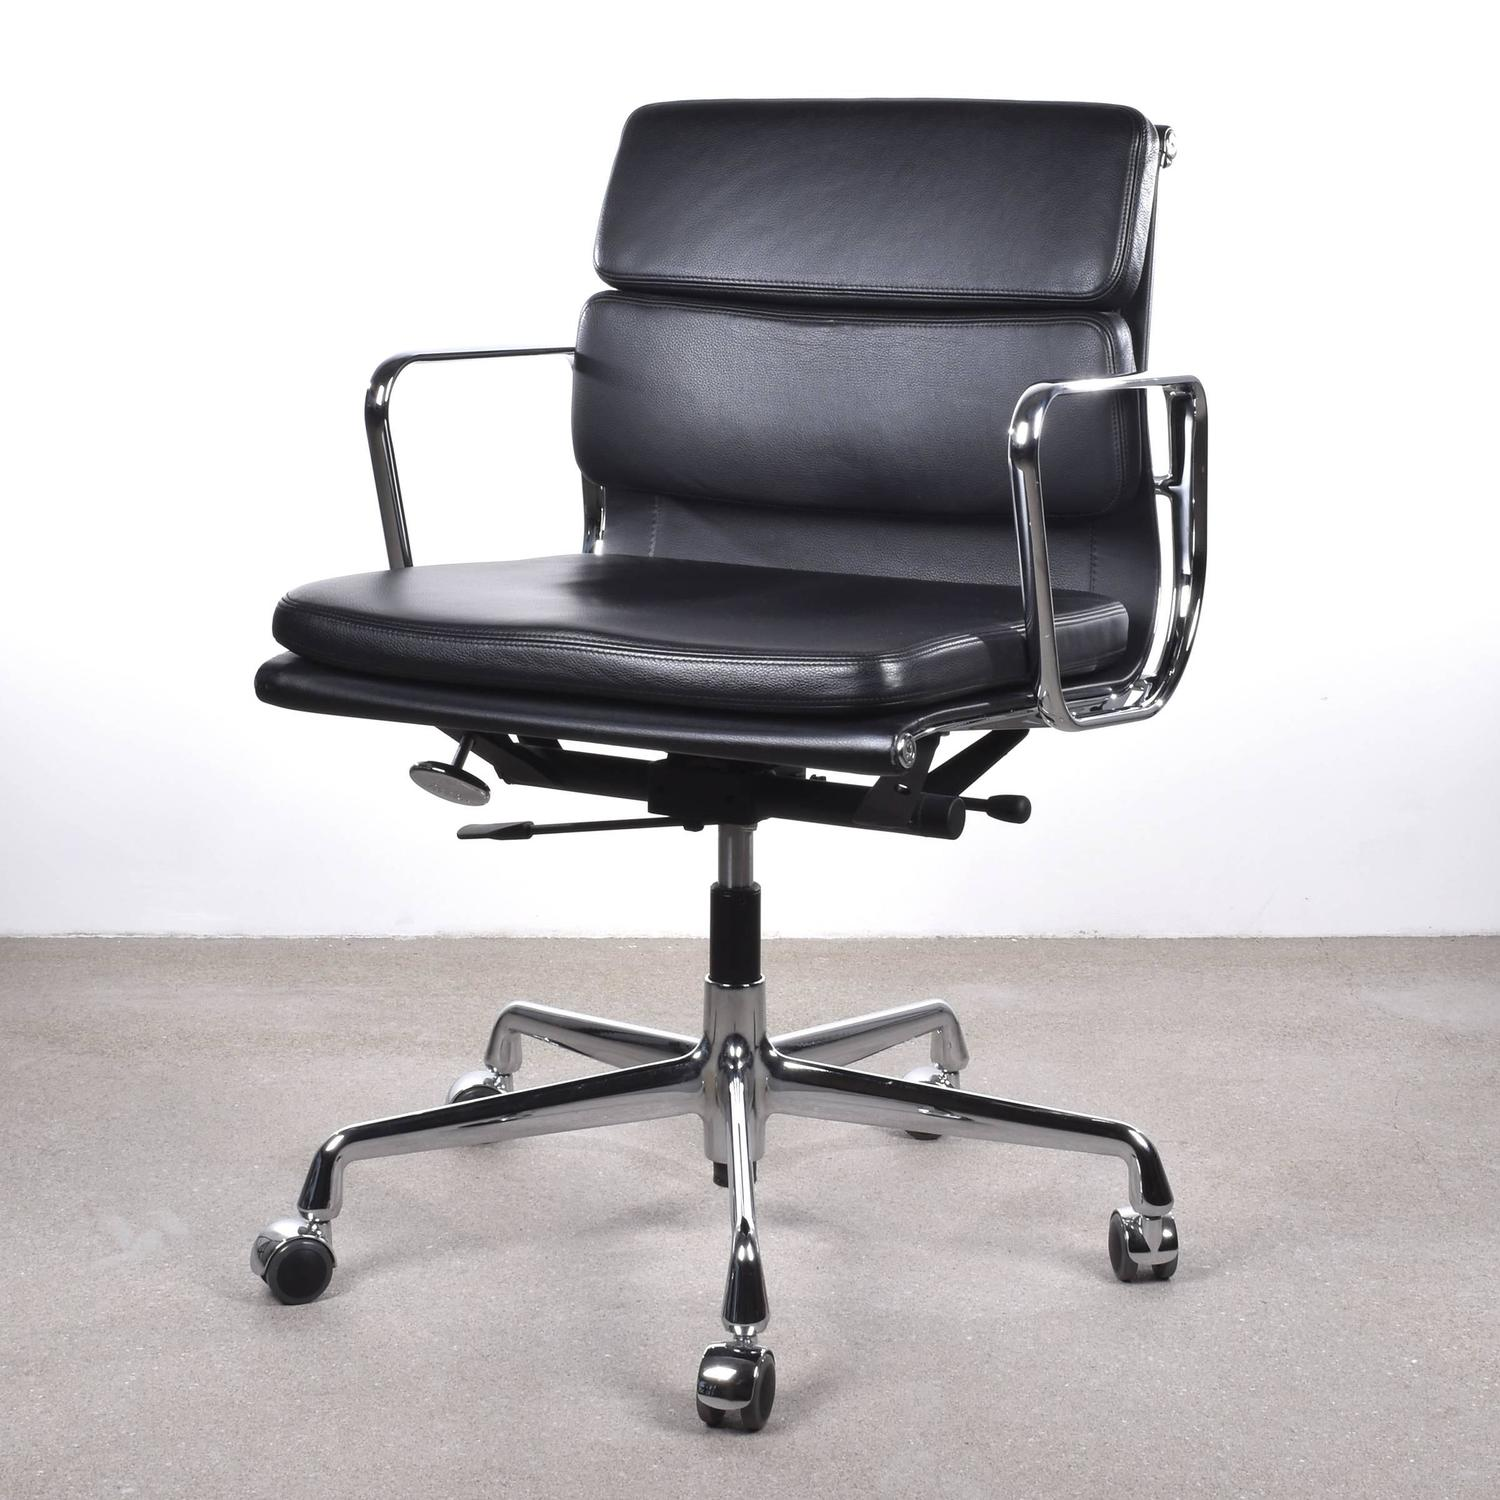 Vitra Office Chair Eames Ea217 Management Soft Pad Vitra Office Chair At 1stdibs